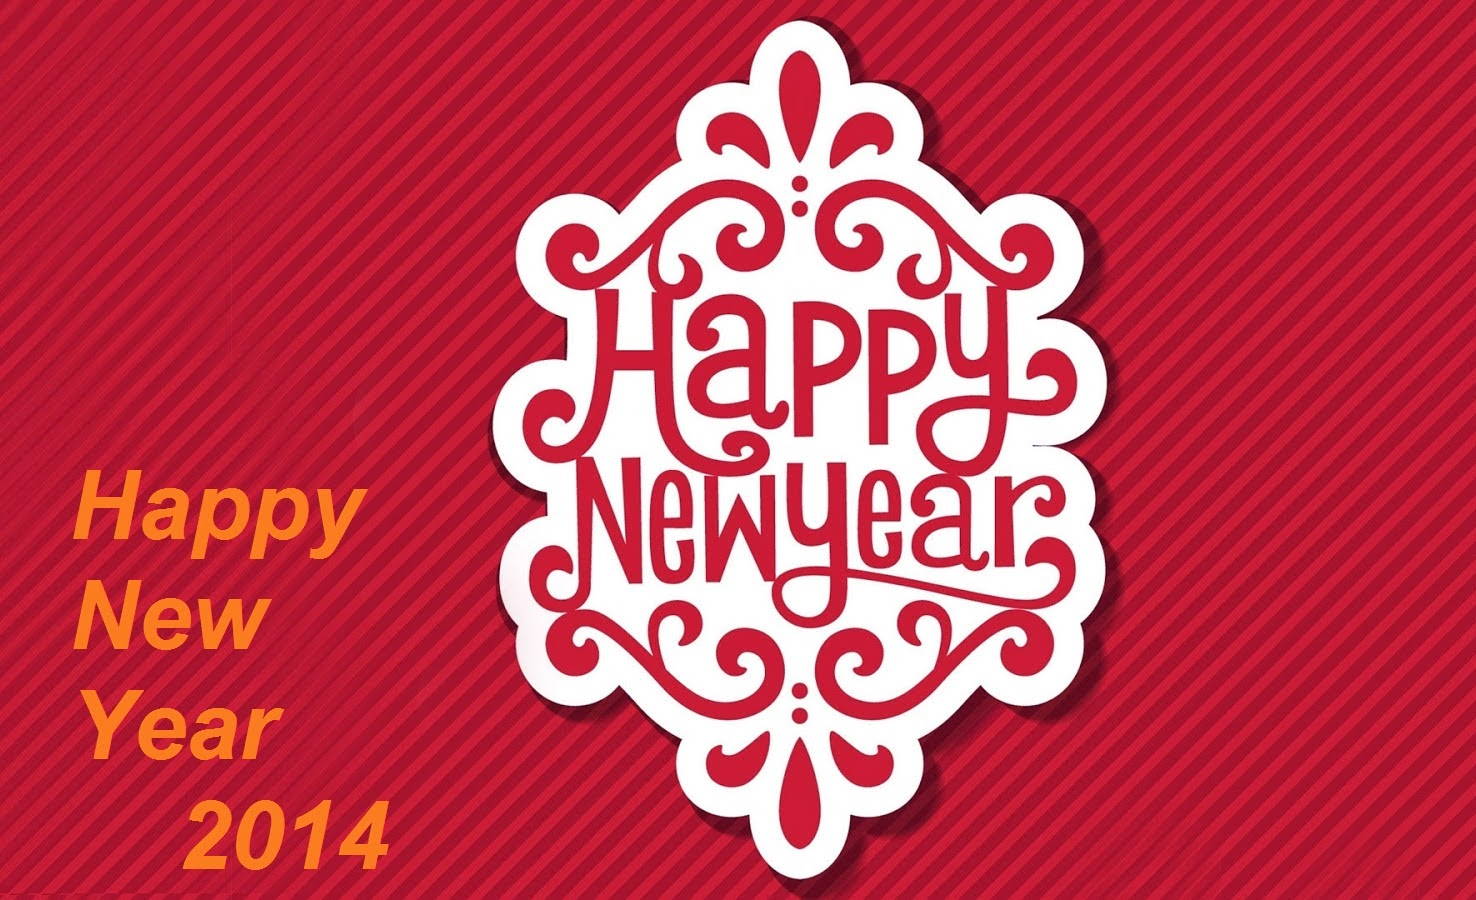 Happy New Year Message.8 New Year Text Messages For Friends 2014